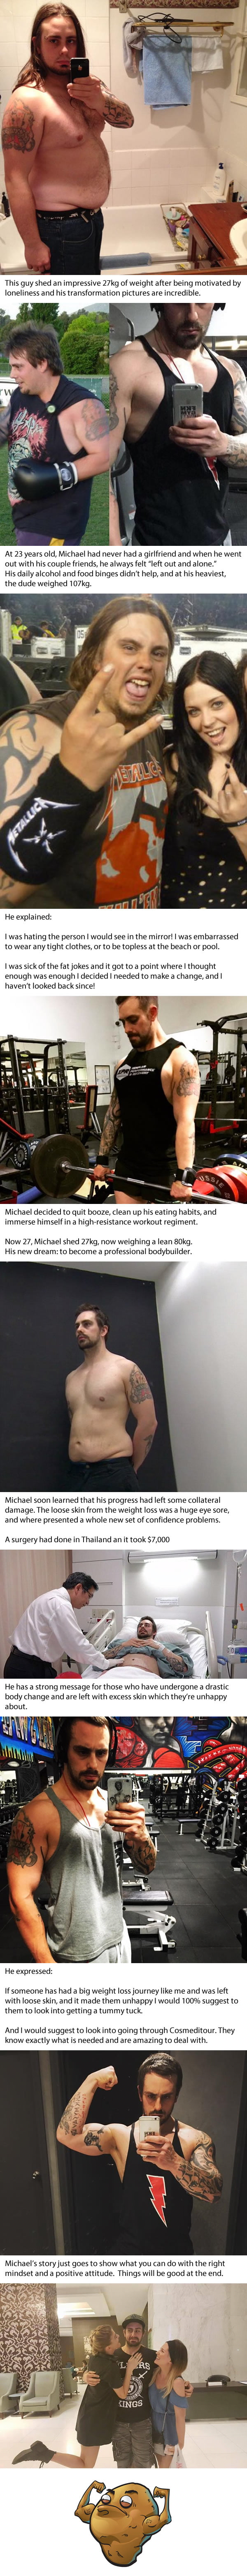 Forever Alone Dude Loses Weight And Is Now A Shredded Body Builder